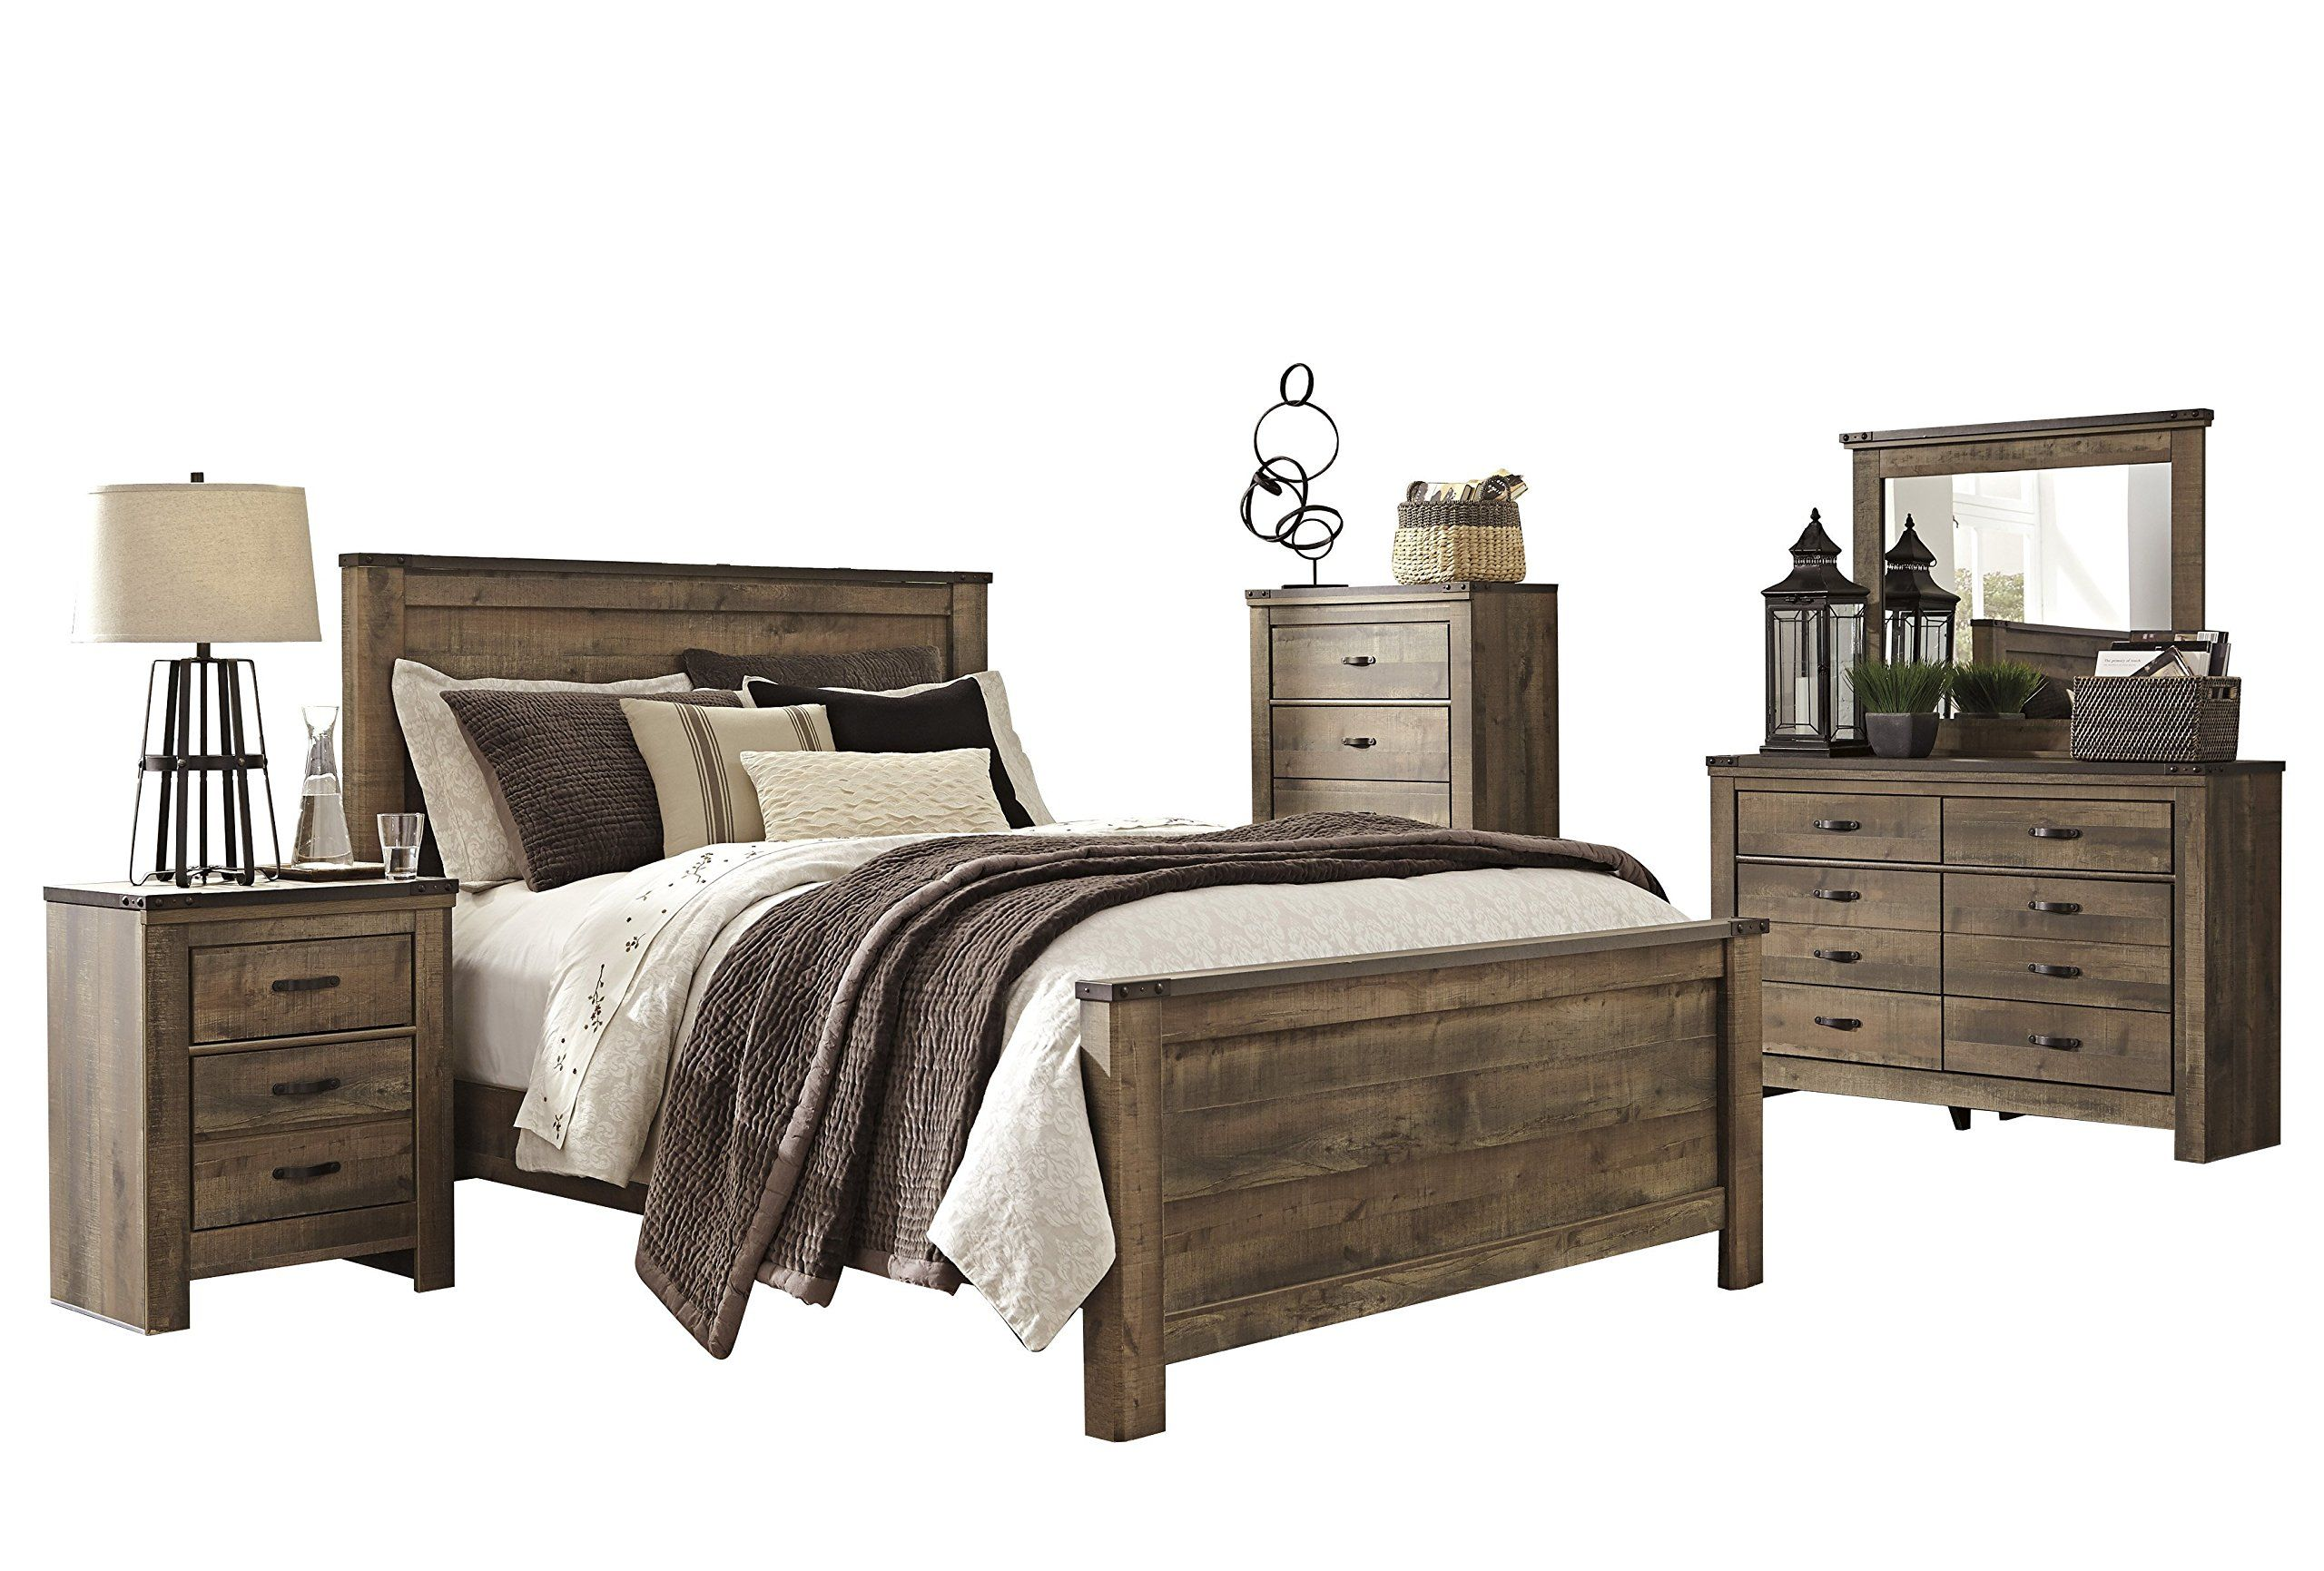 Ashley Trinell 5pc Bedroom Set E King Panel Bed One Nightstand Dresser Mirror Chest In Brown Ashley Bedroom Furniture Sets Ashley Furniture Bedroom Bedroom Set